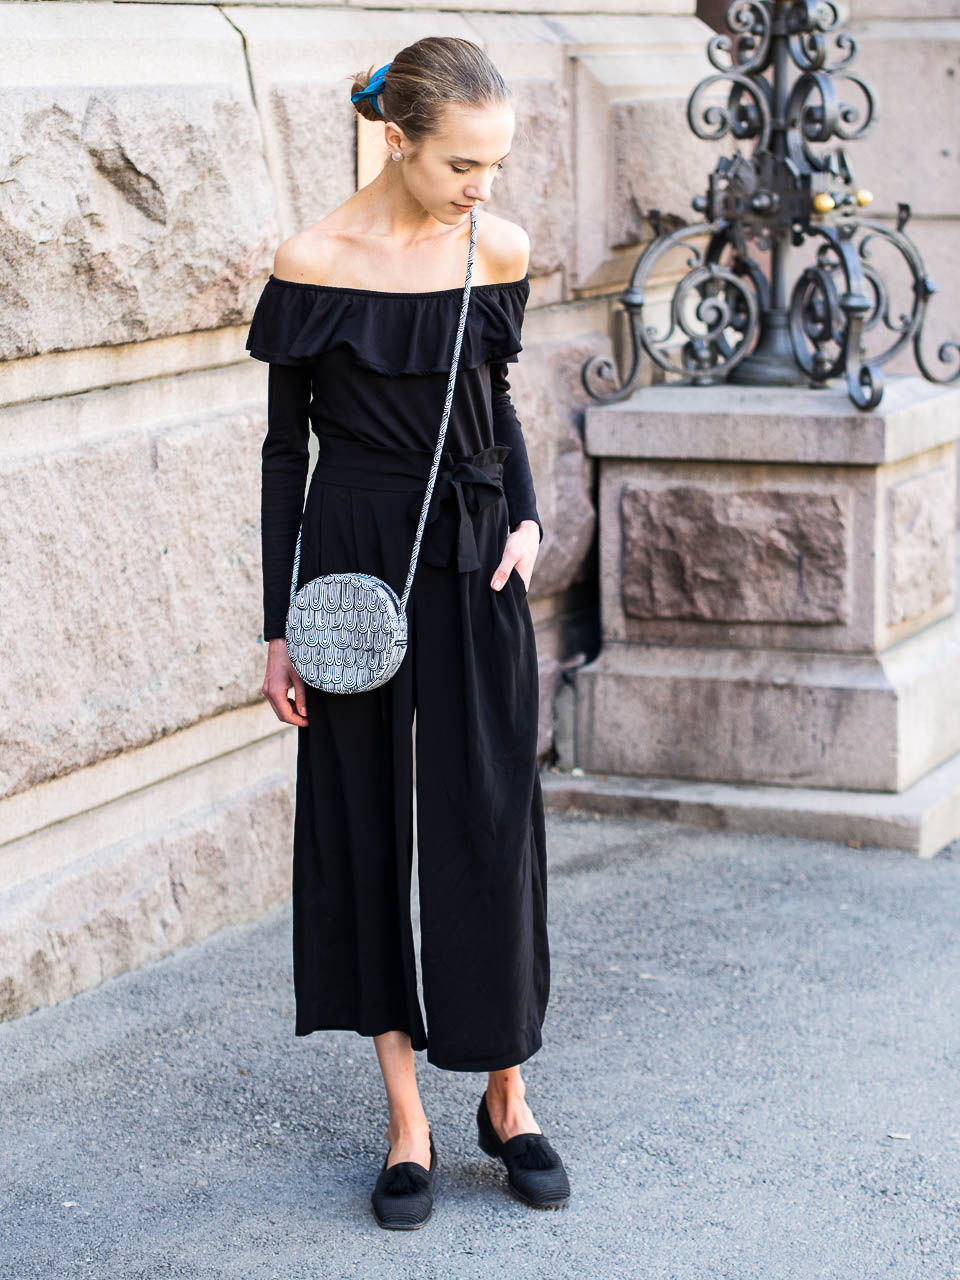 scandinavian-fashion-blogger-outfit-inspiration